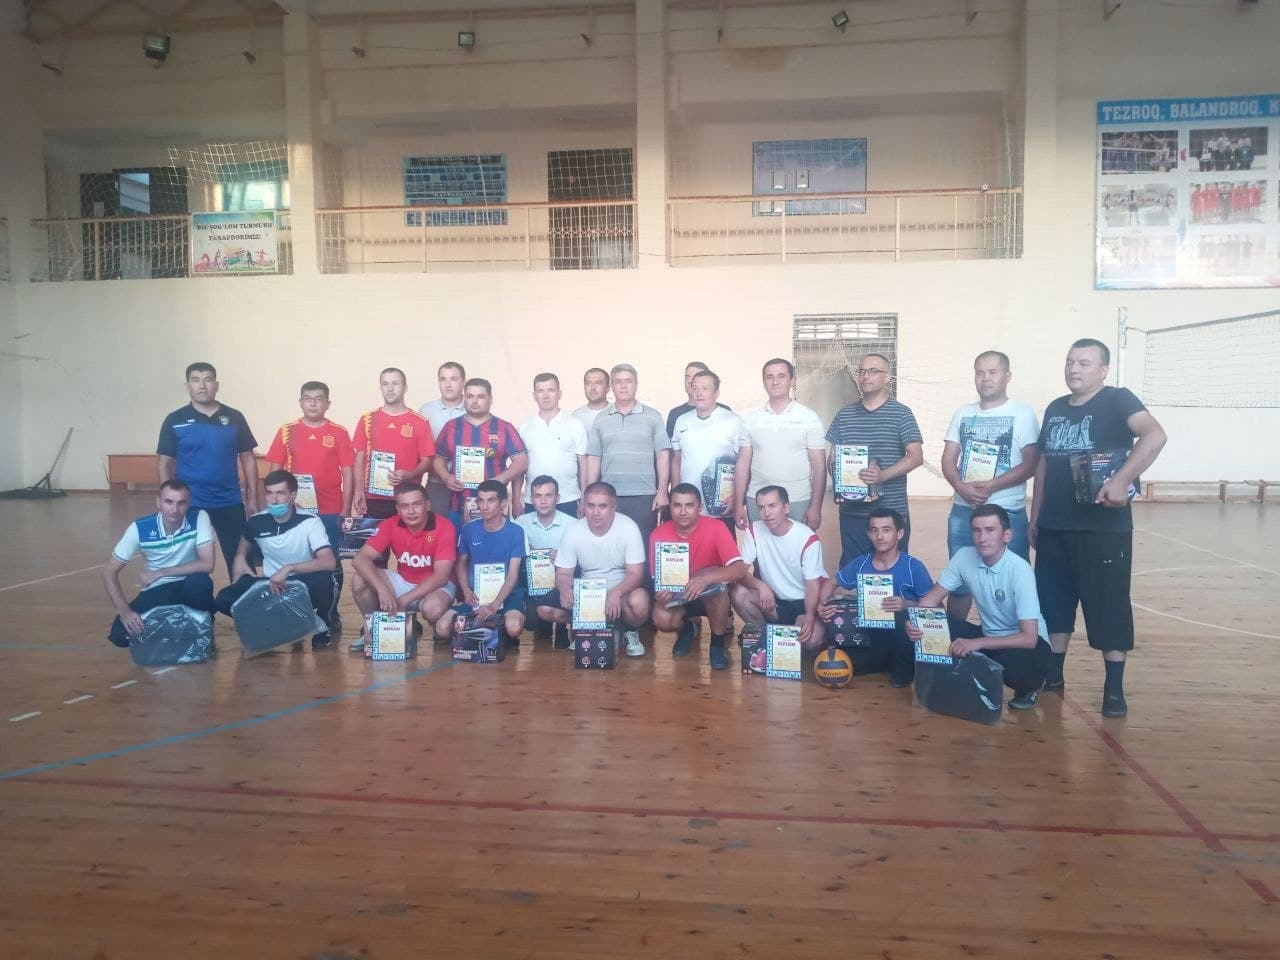 On August 30, 2021, on the occasion of the 30th anniversary of the Independence of our country, the University Championship was held on Volleyball among professors and staff of the University.